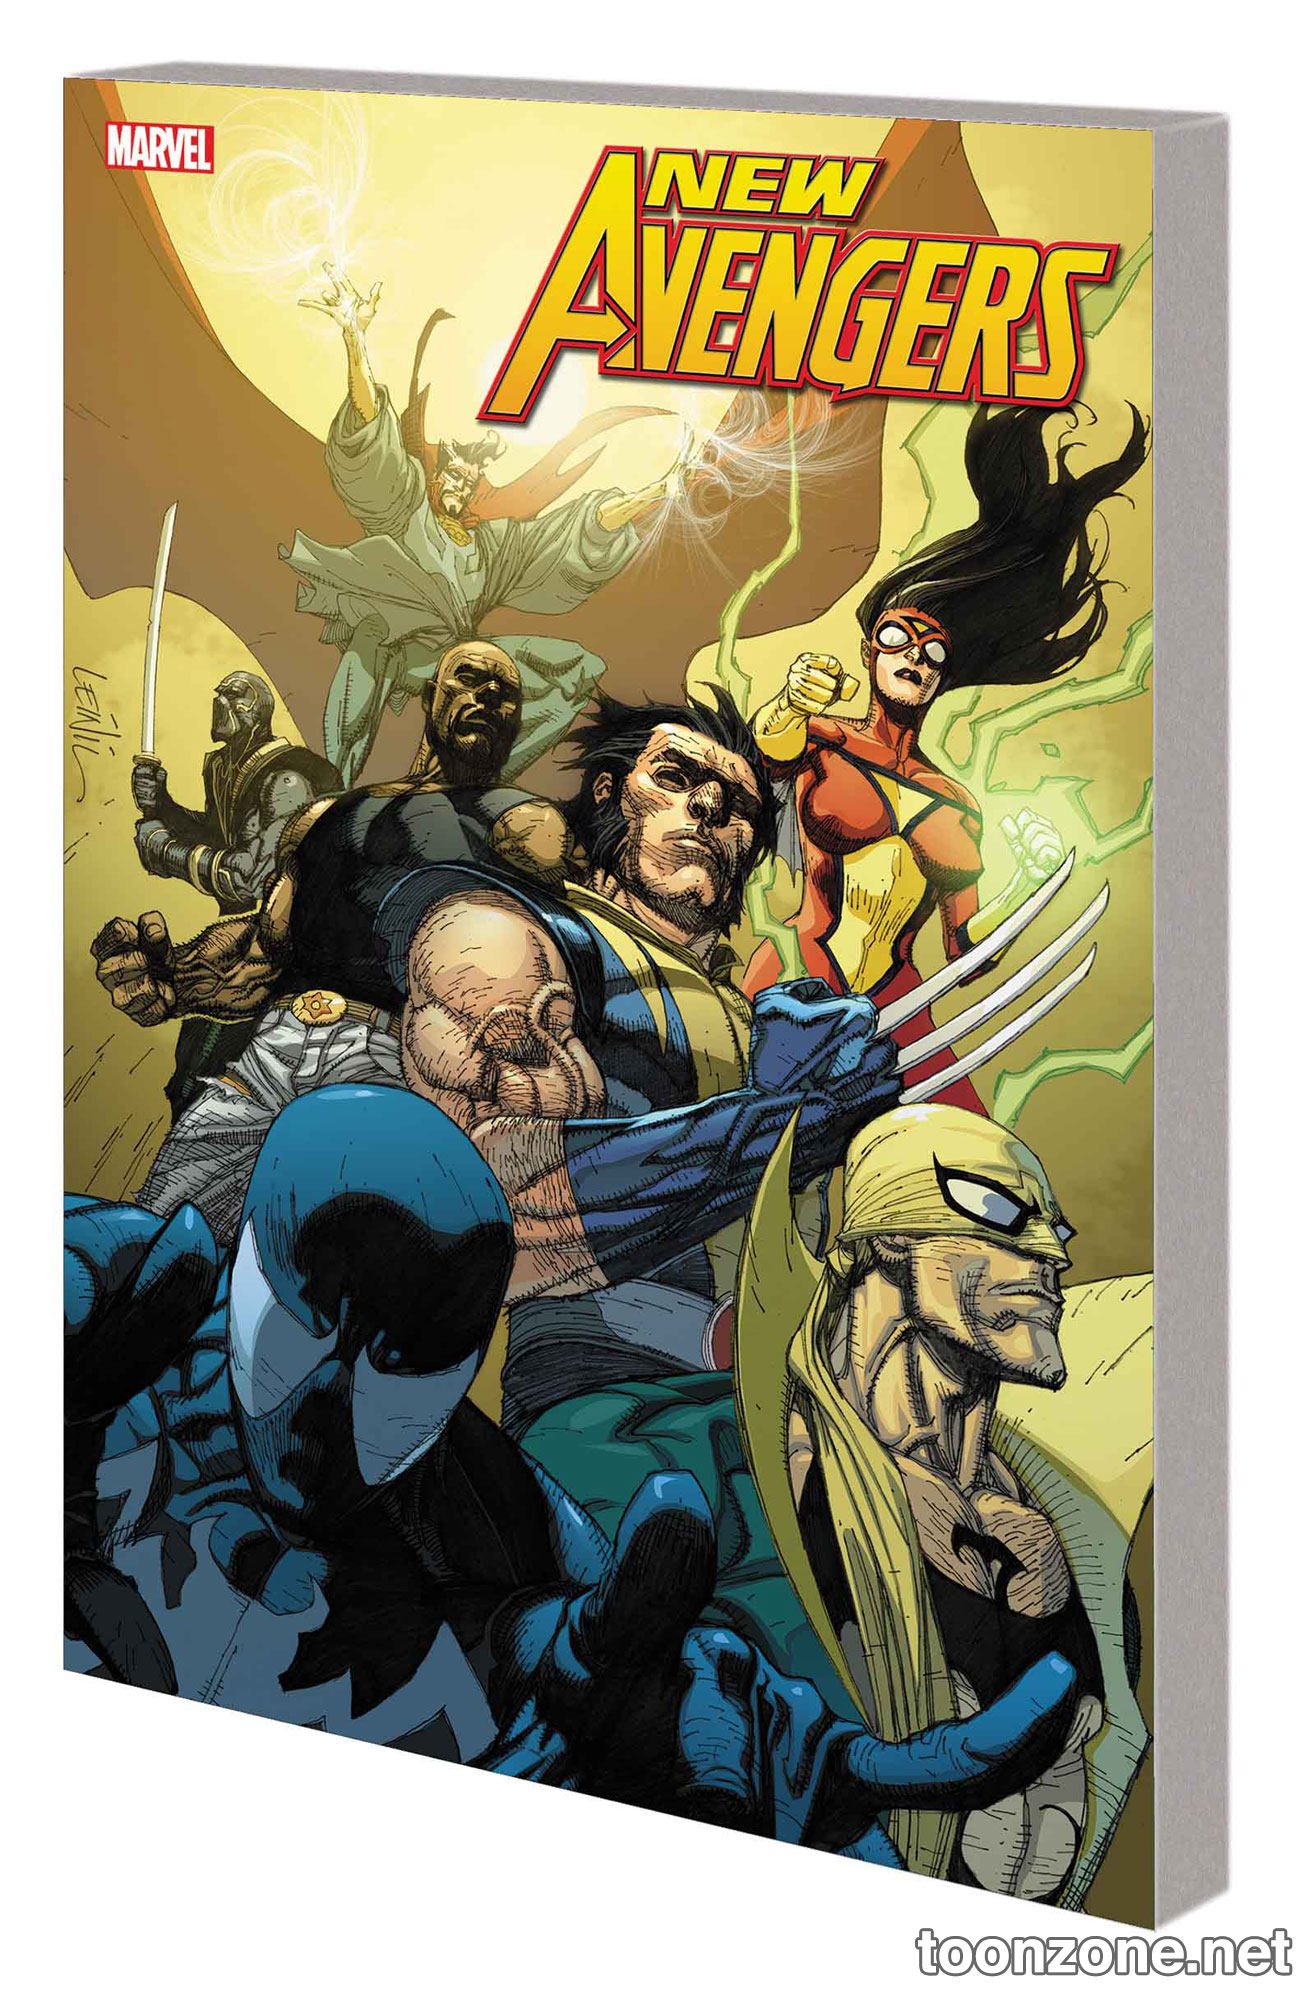 NEW AVENGERS BY BRIAN MICHAEL BENDIS:  THE COMPLETE COLLECTION VOL. 3 TPB